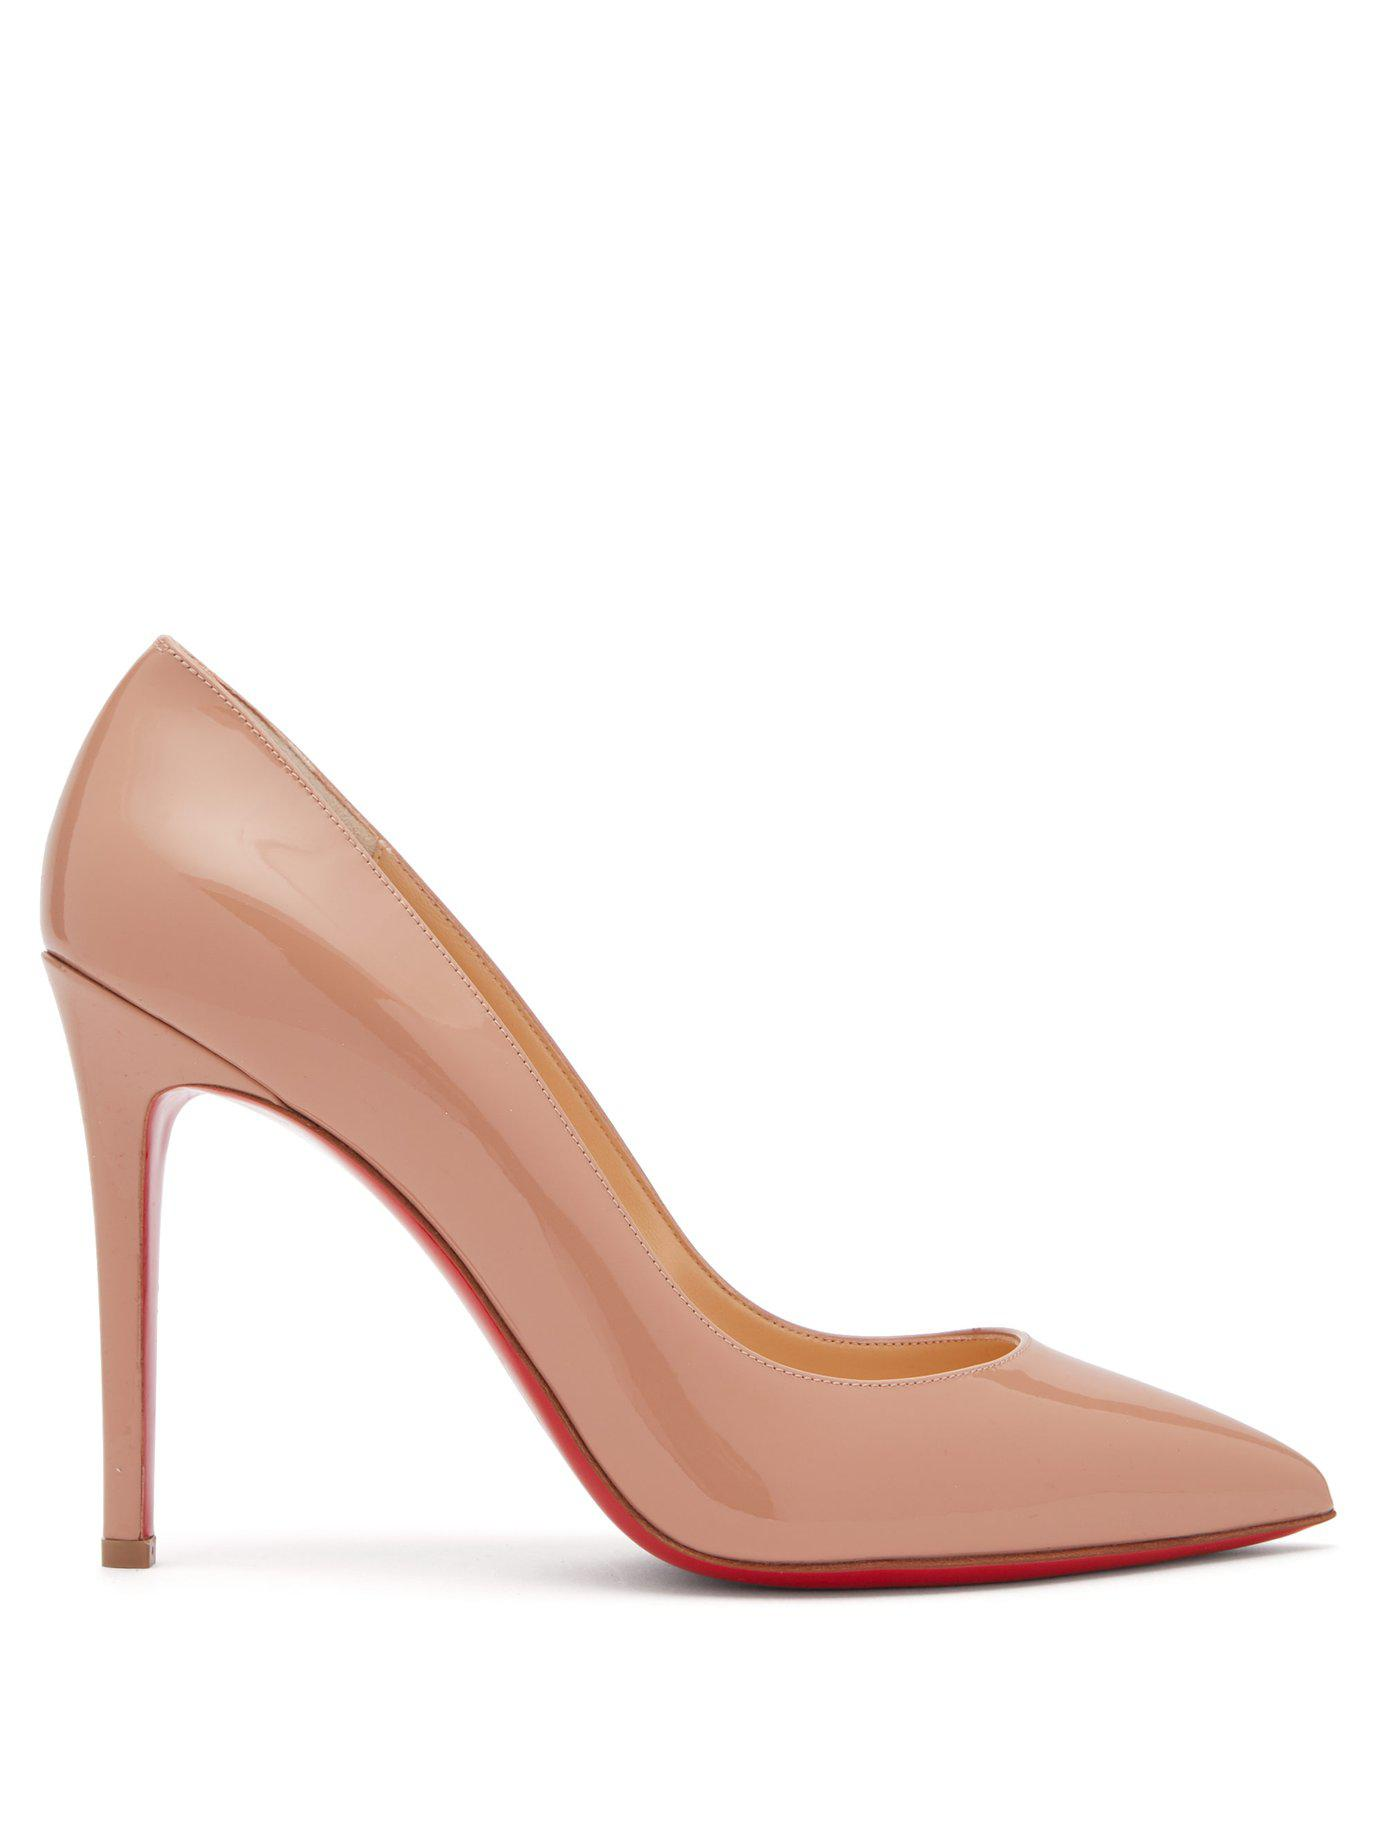 322ac52bf28c Lyst - Christian Louboutin Pigalle 100 Patent Leather Pumps in ...